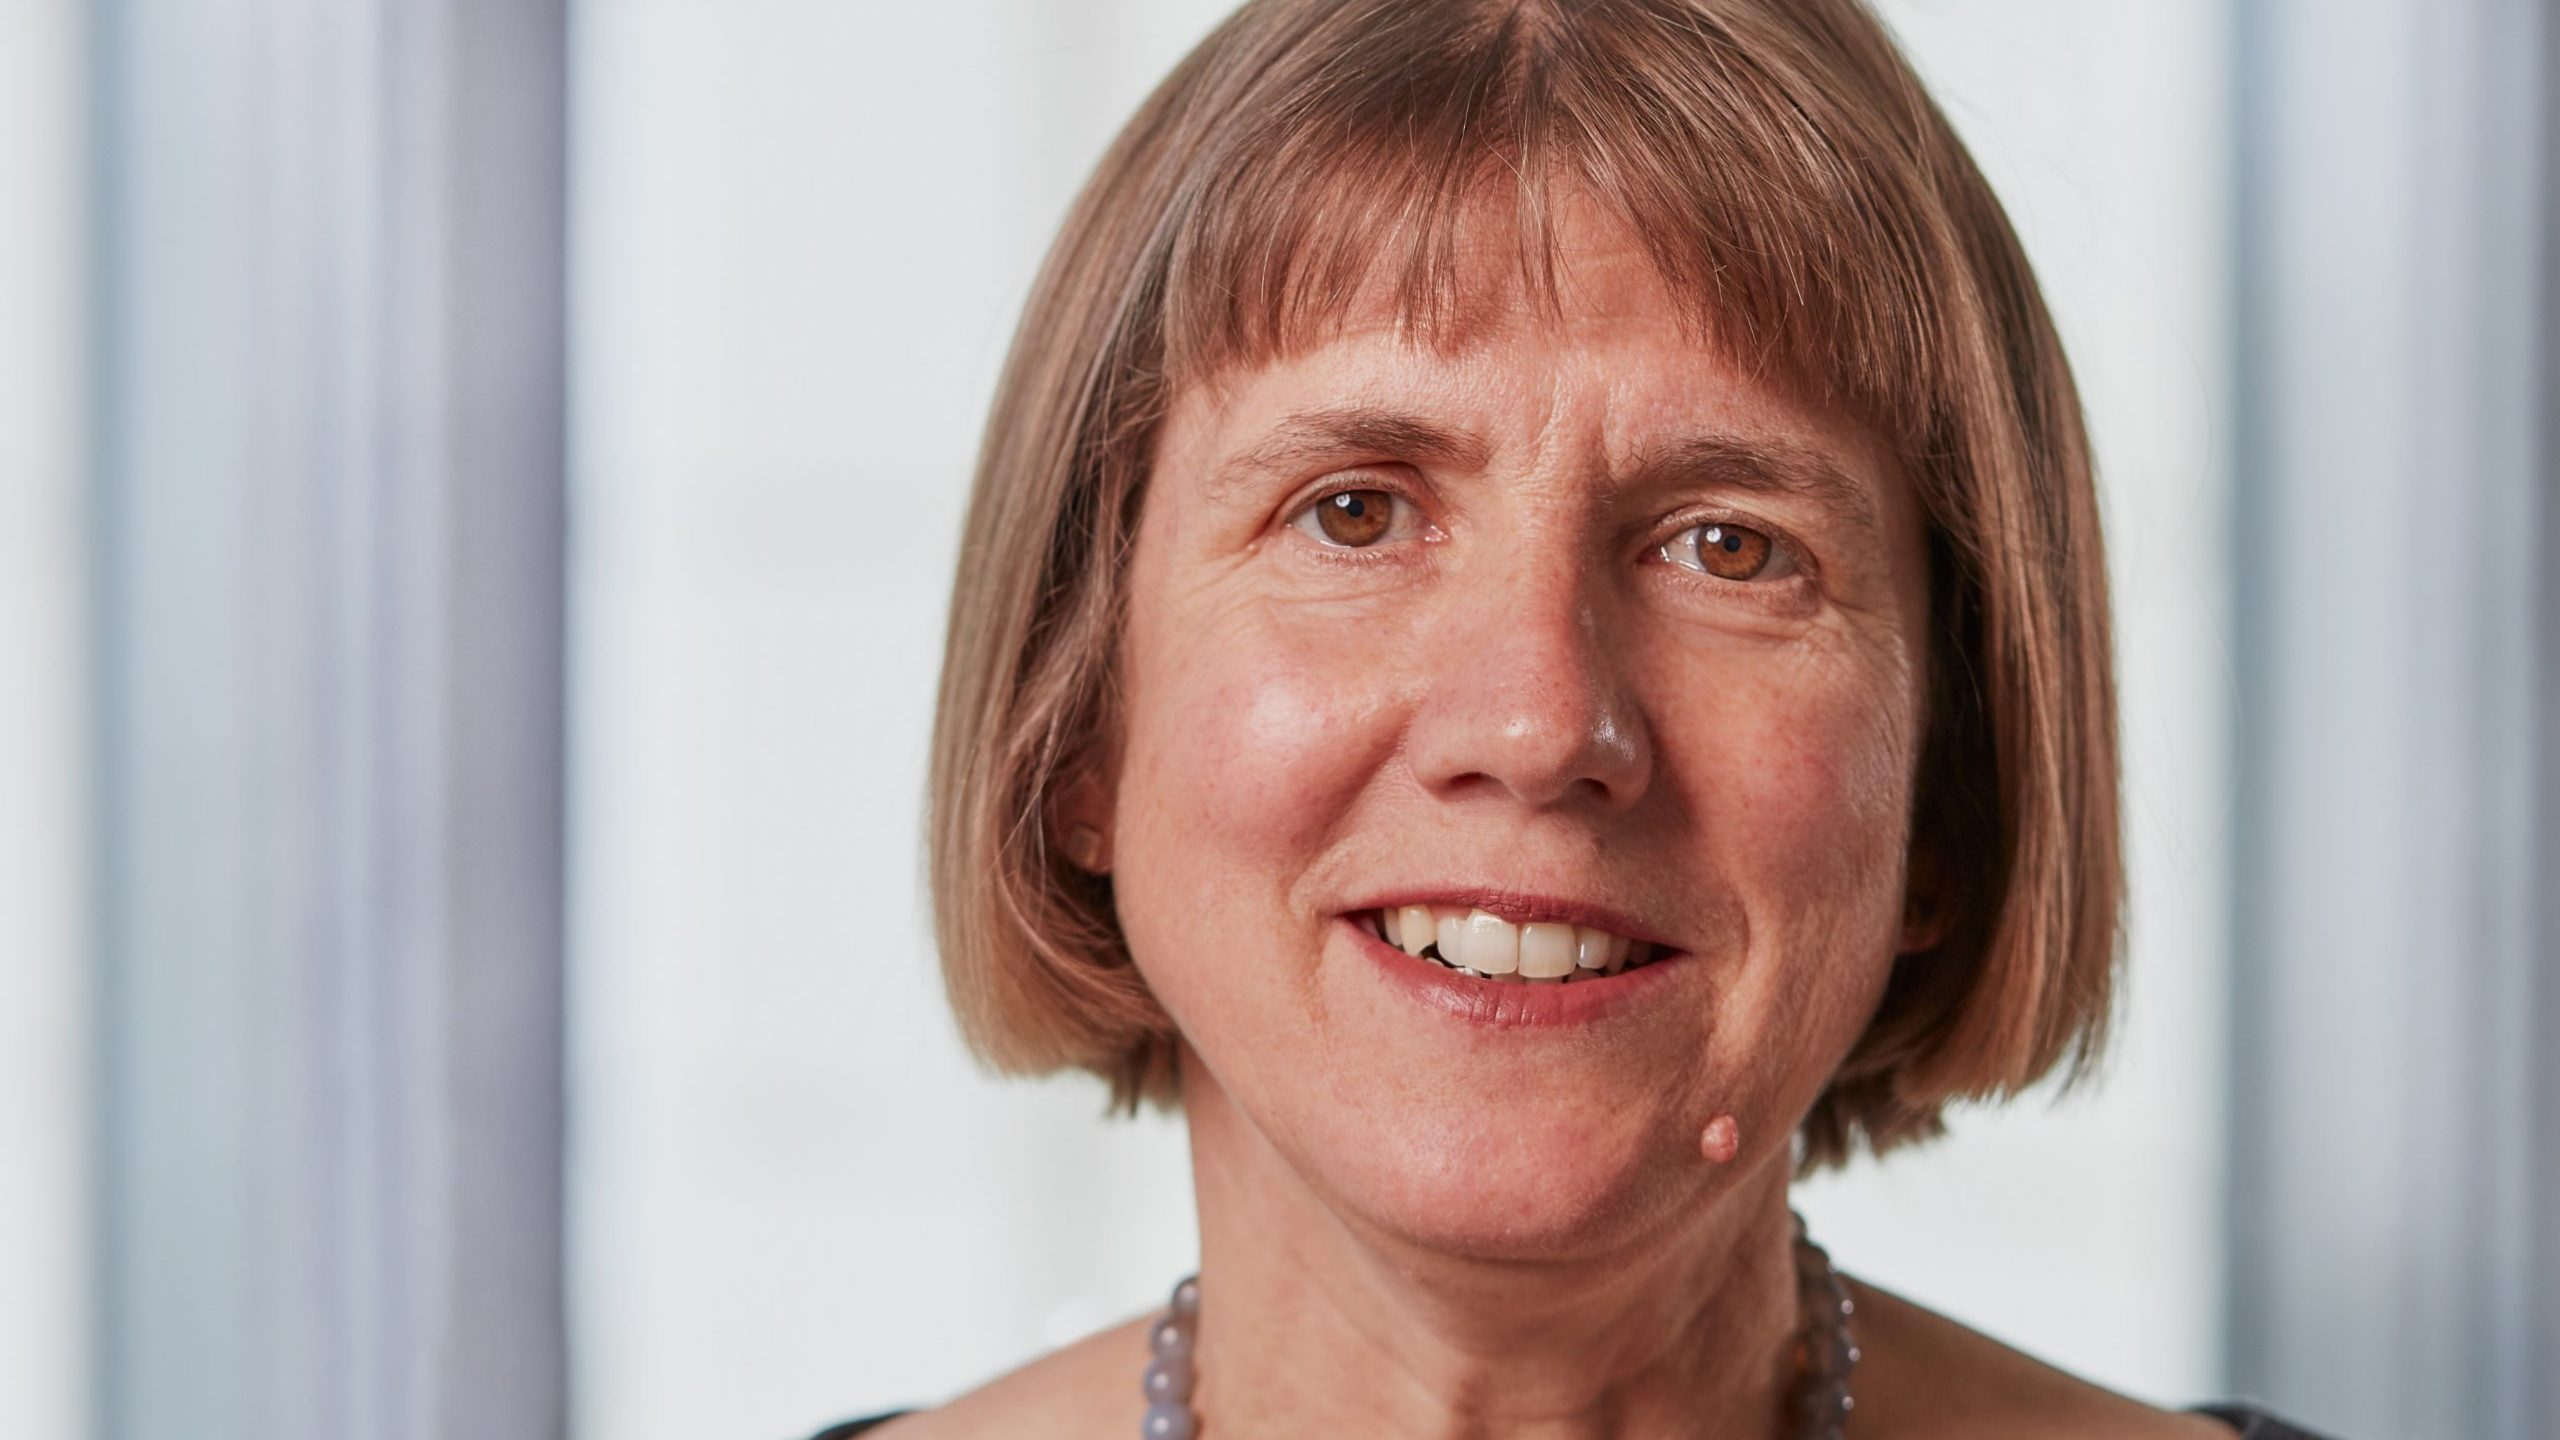 Victoria Pomery is joining The Box in Plymouth as its chief executive officer